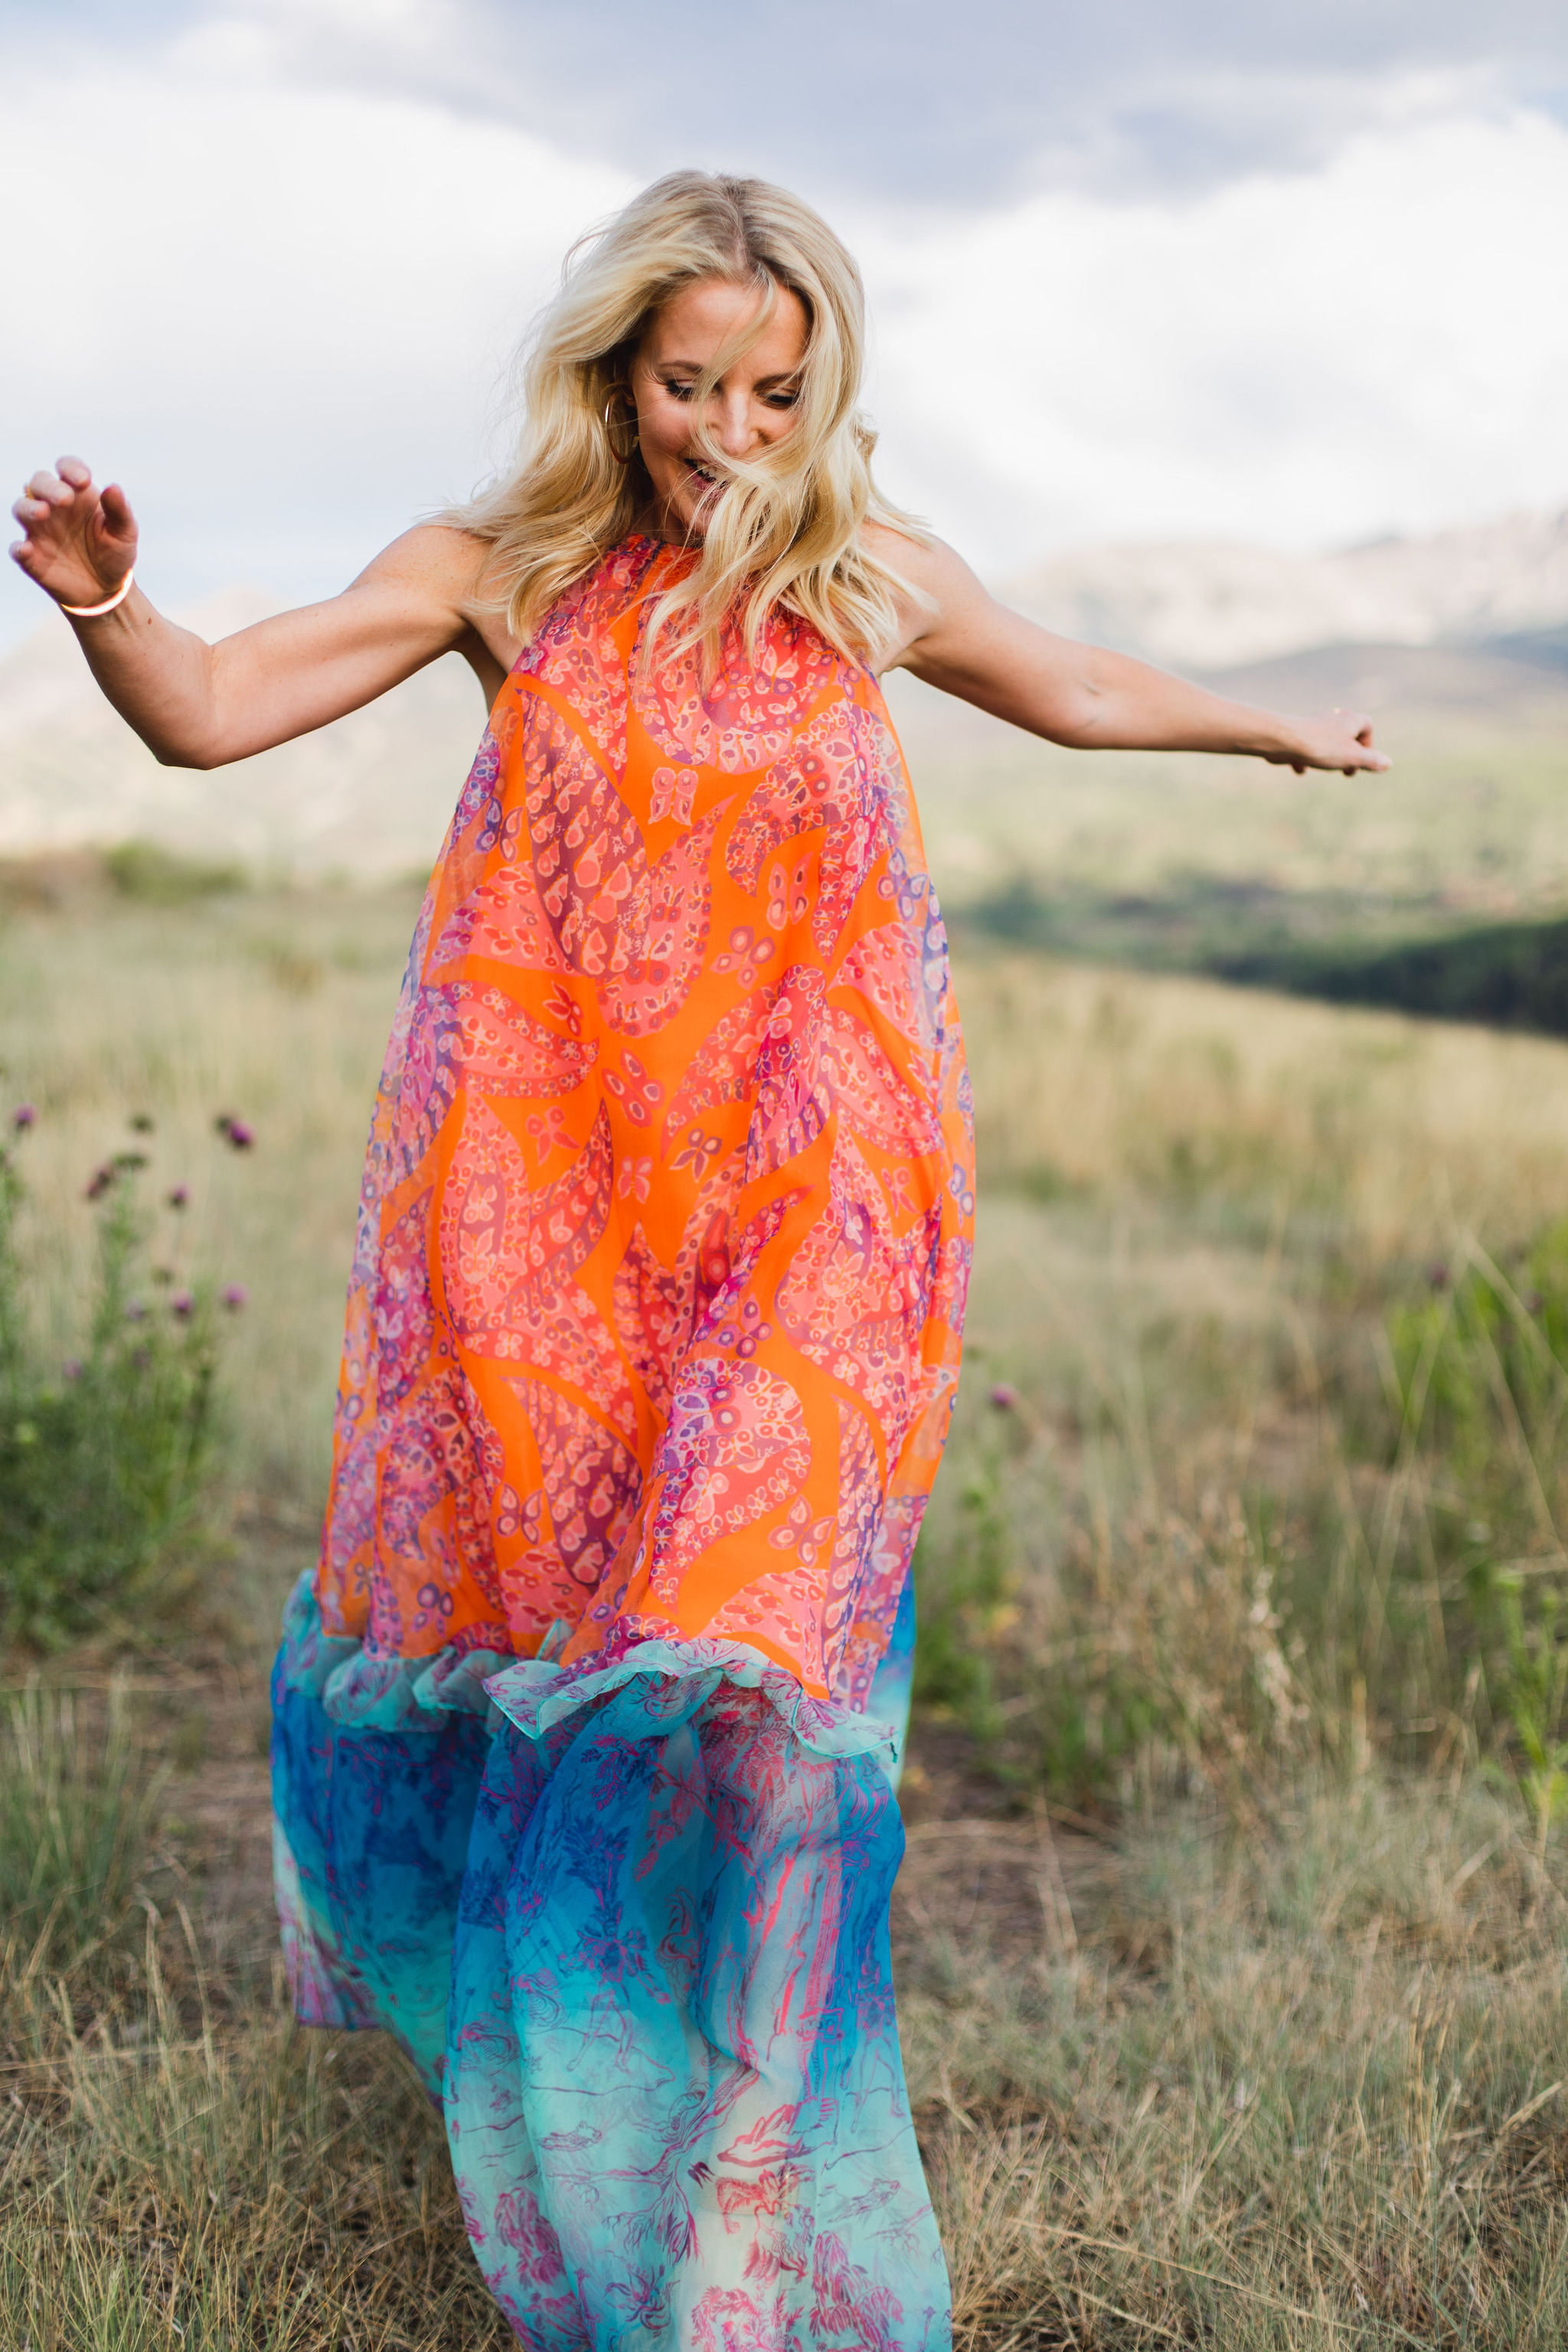 How To Manifest Anything, Fashion blogger Erin Busbee of Busbee Style wearing an orange and blue Staud Ina dress with white sunglasses walking around in Telluride, Colorado